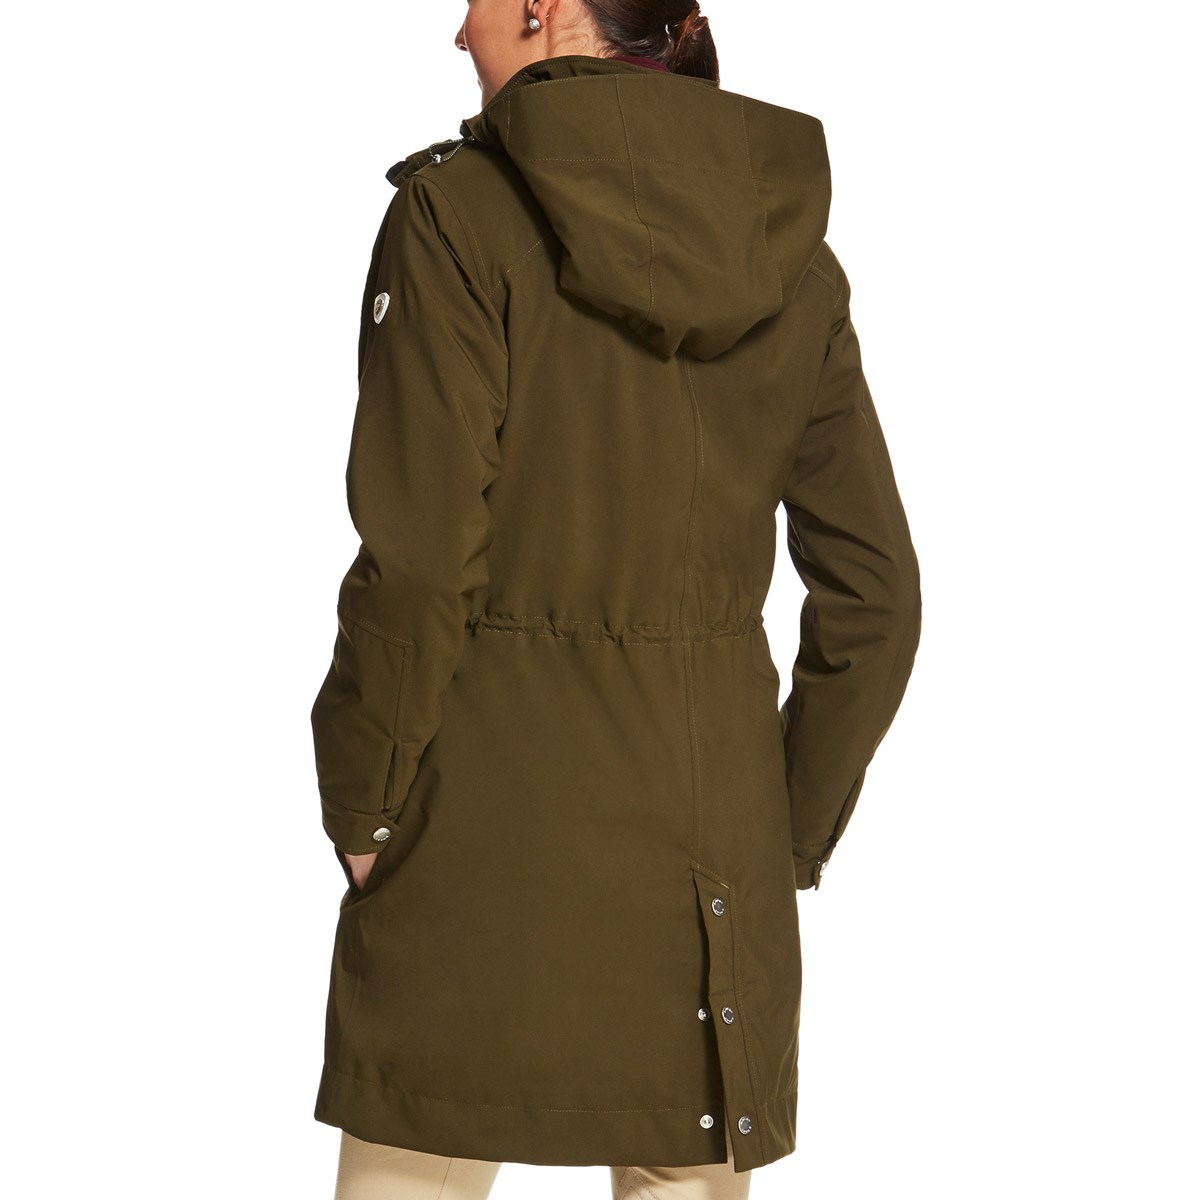 Ariat Commuter H2O Ladies Parka Jacket - Brine Olive - Redpost ...